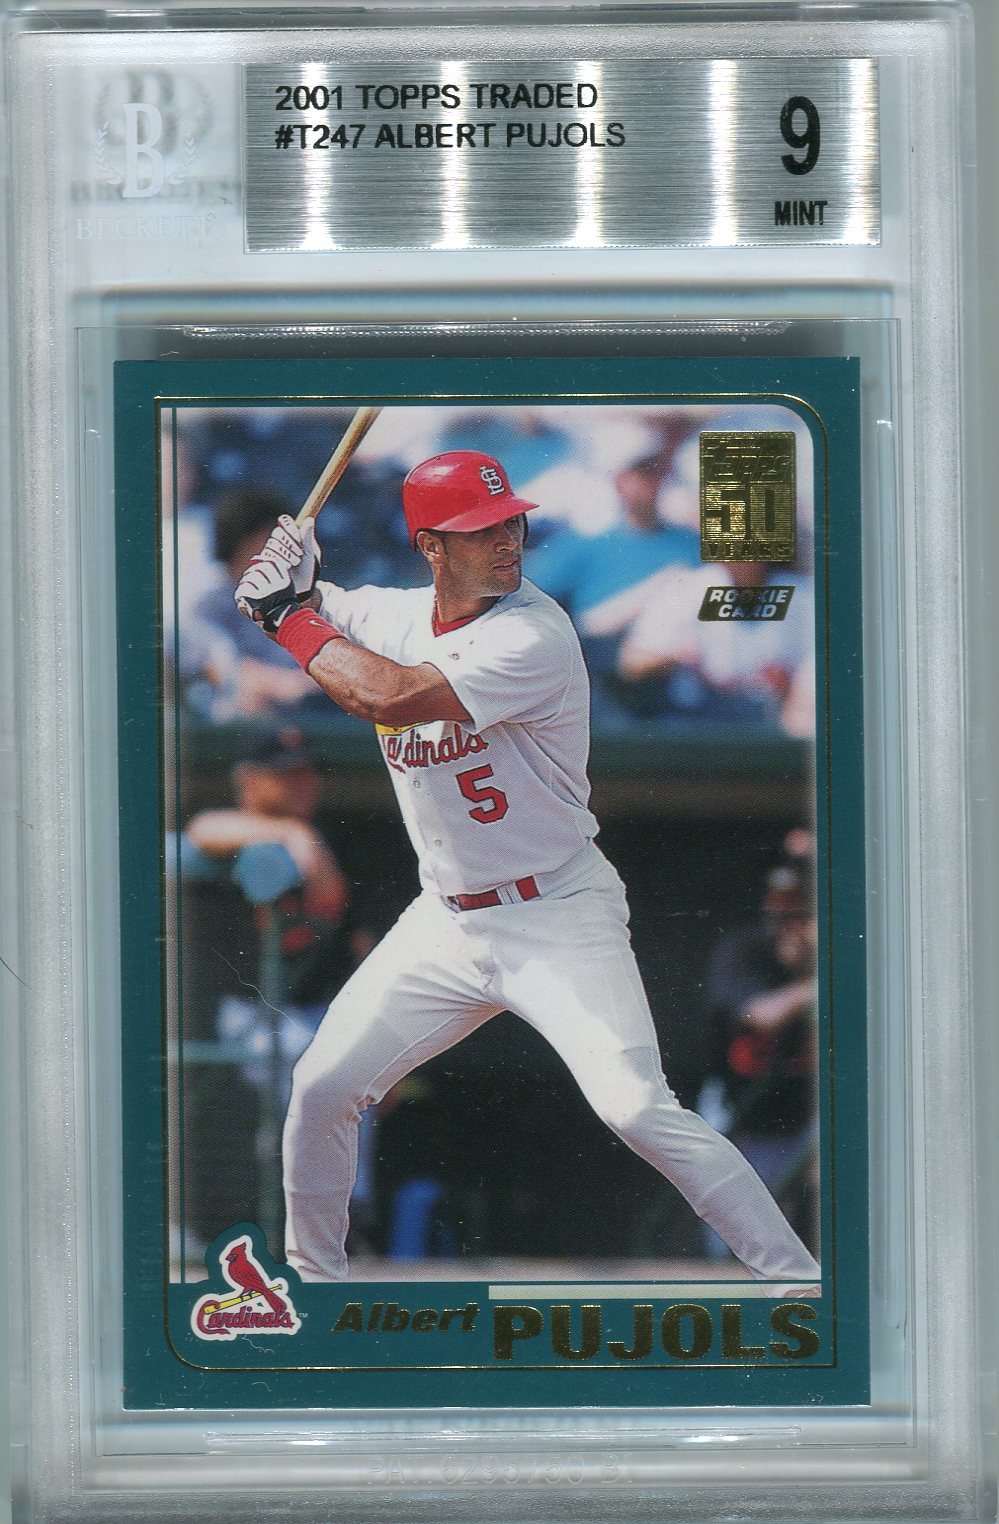 2001 Topps Traded #T247 Albert Pujols RC